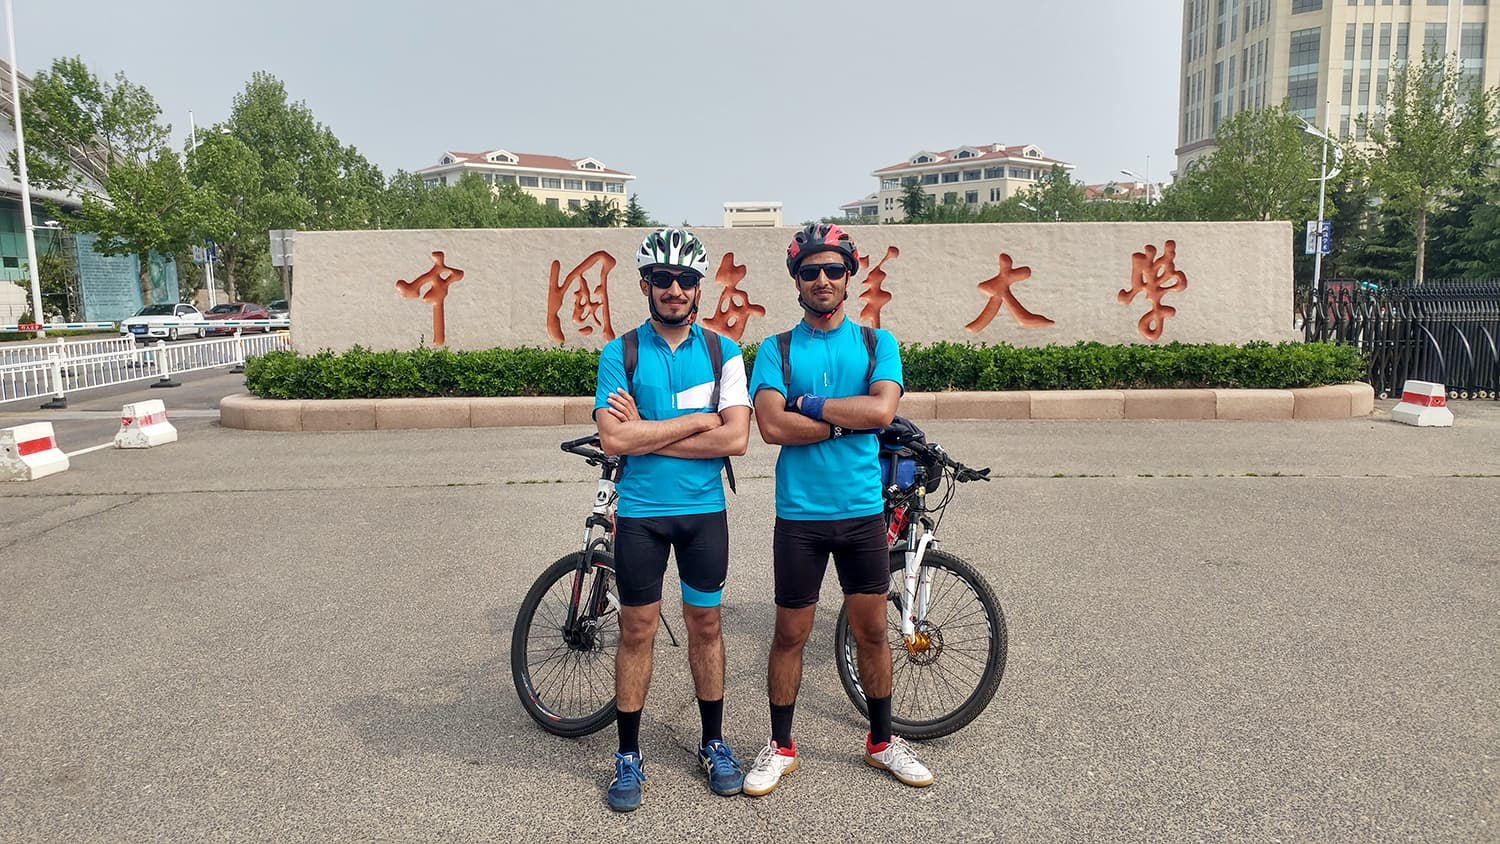 We did it! At Ocean University of China after completing our dream cycling tour.